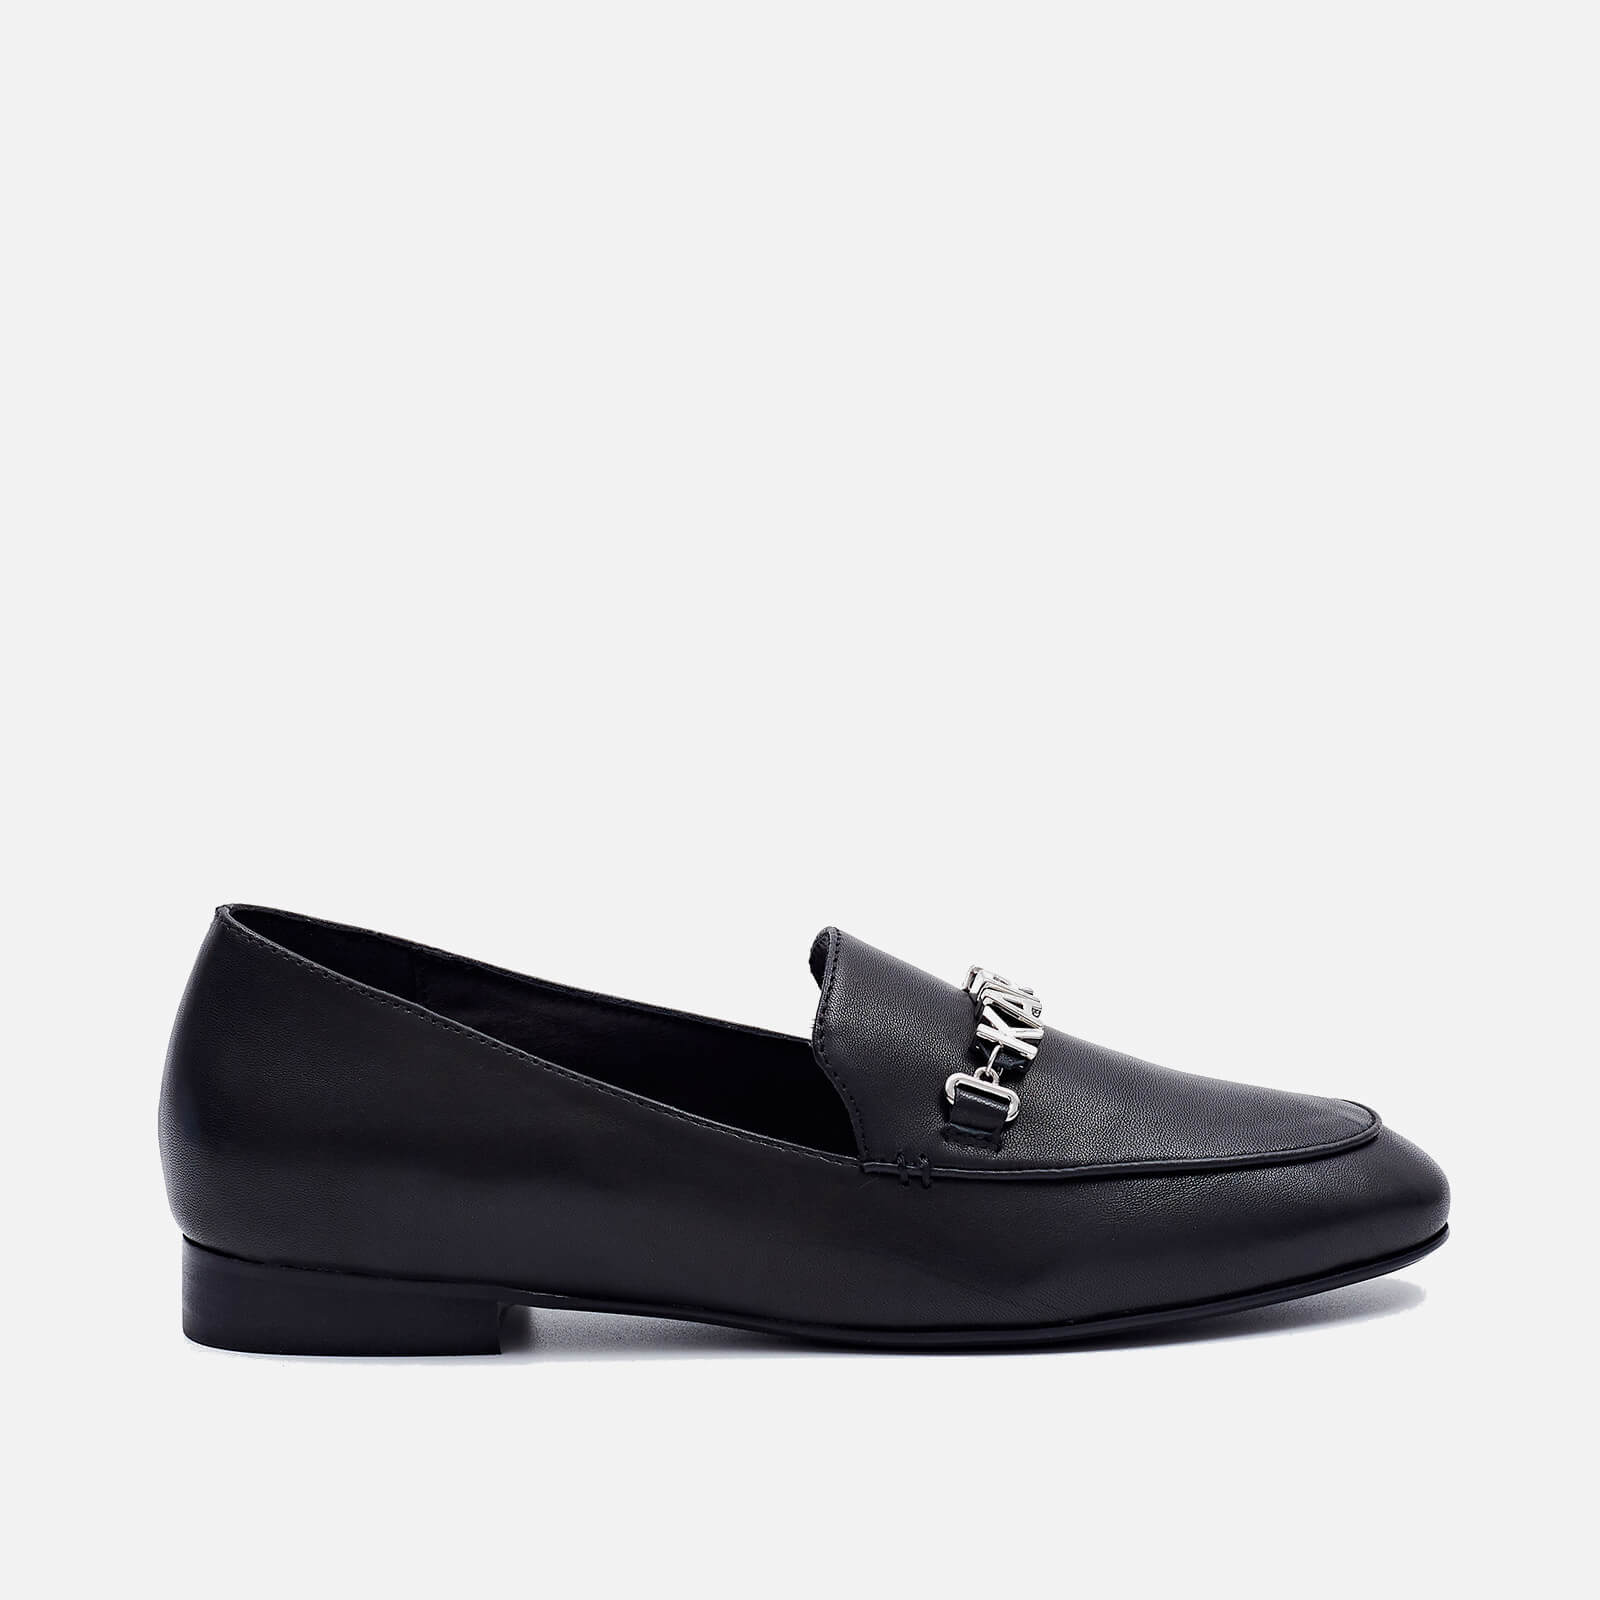 Click to view product details and reviews for Karl Lagerfeld Womens Regency Leather Mules Black Uk 4.